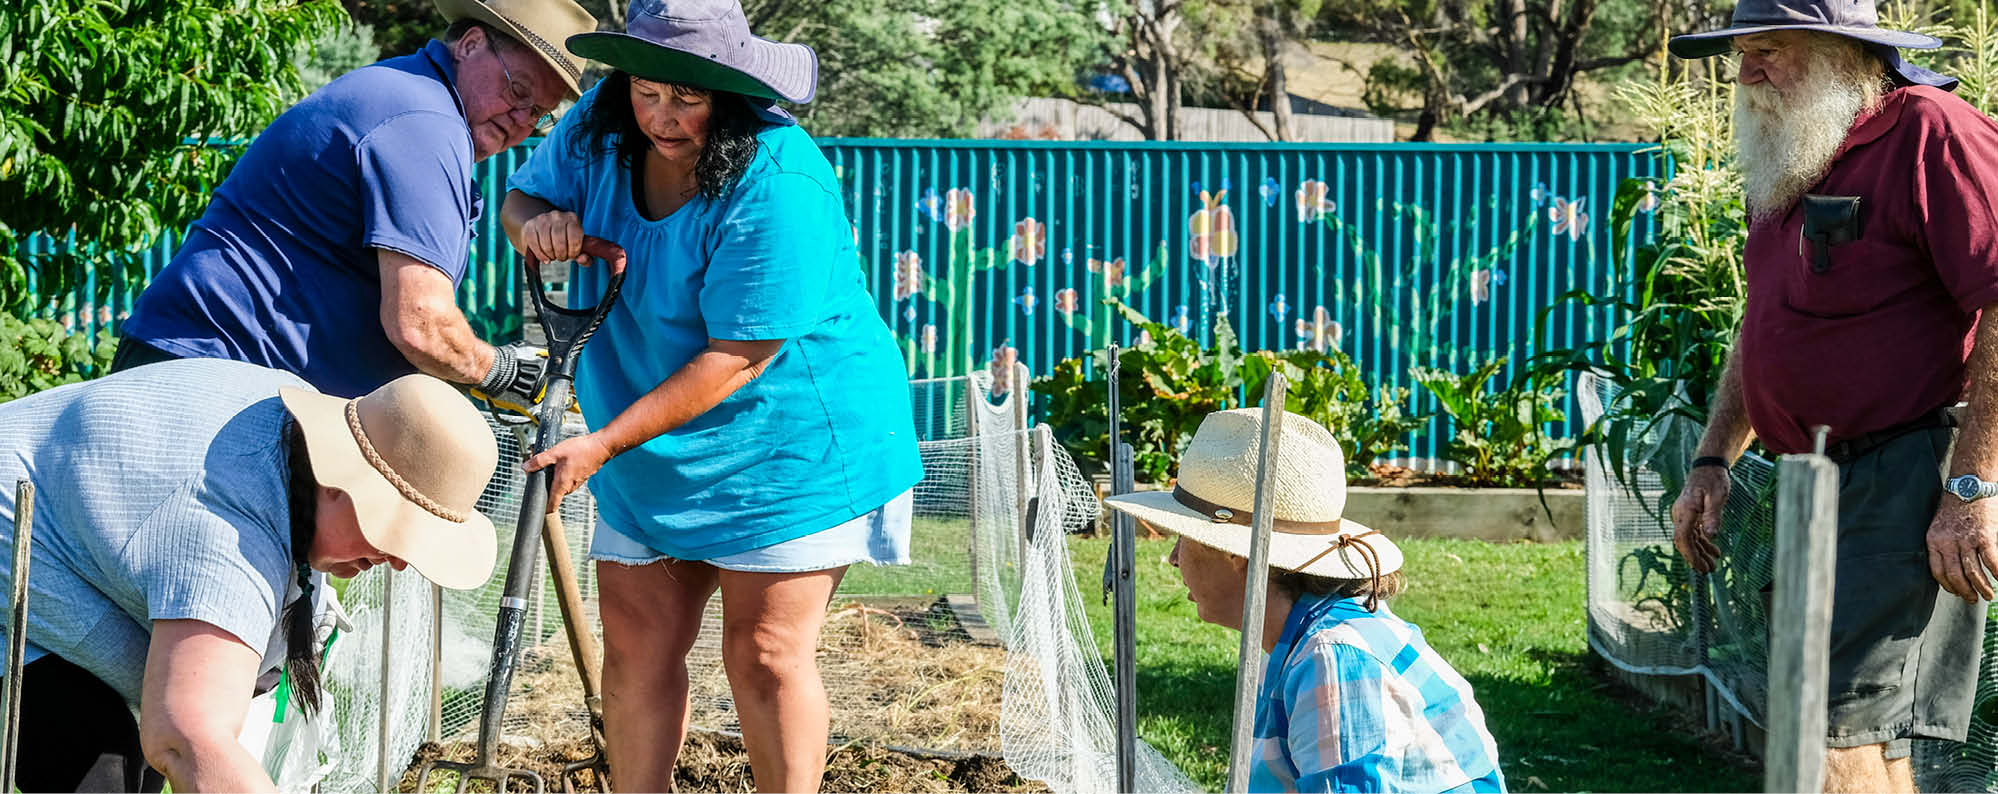 Community members working on a garden in the Northern Suburbs of Launceston